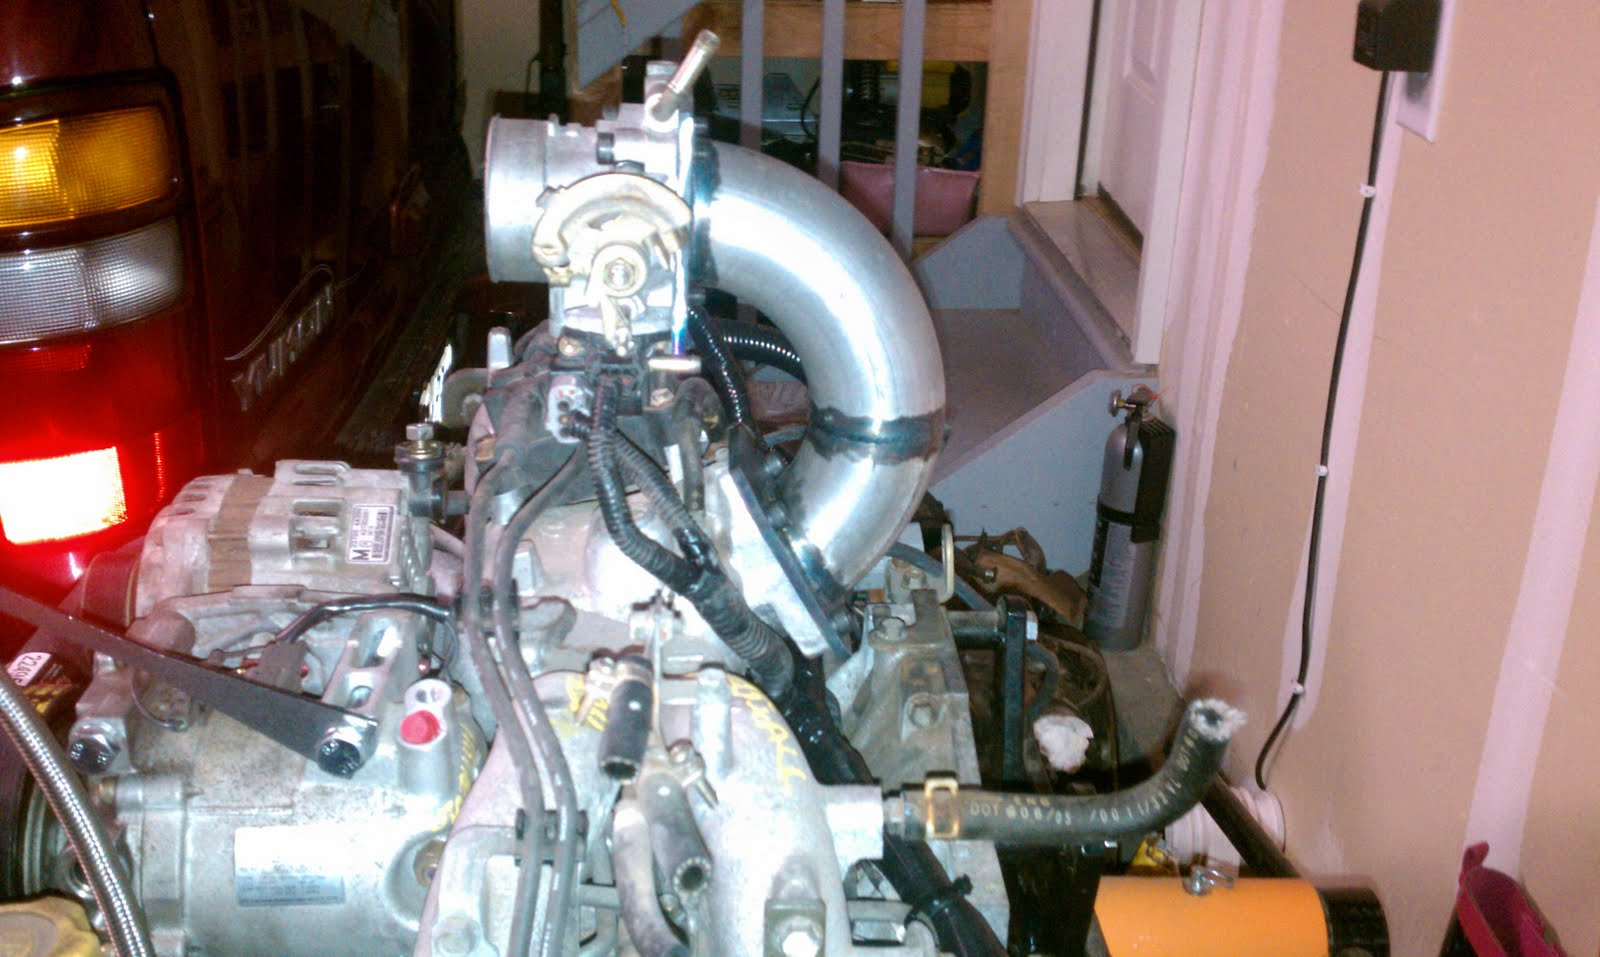 1979 Vw Westfalia Campmobile Deluxe 2010 Throttle Body Wiring Harness Reversing The And Avoid Having To Relocate Alternator A C Compressor With Reverser Everything Stays Stock